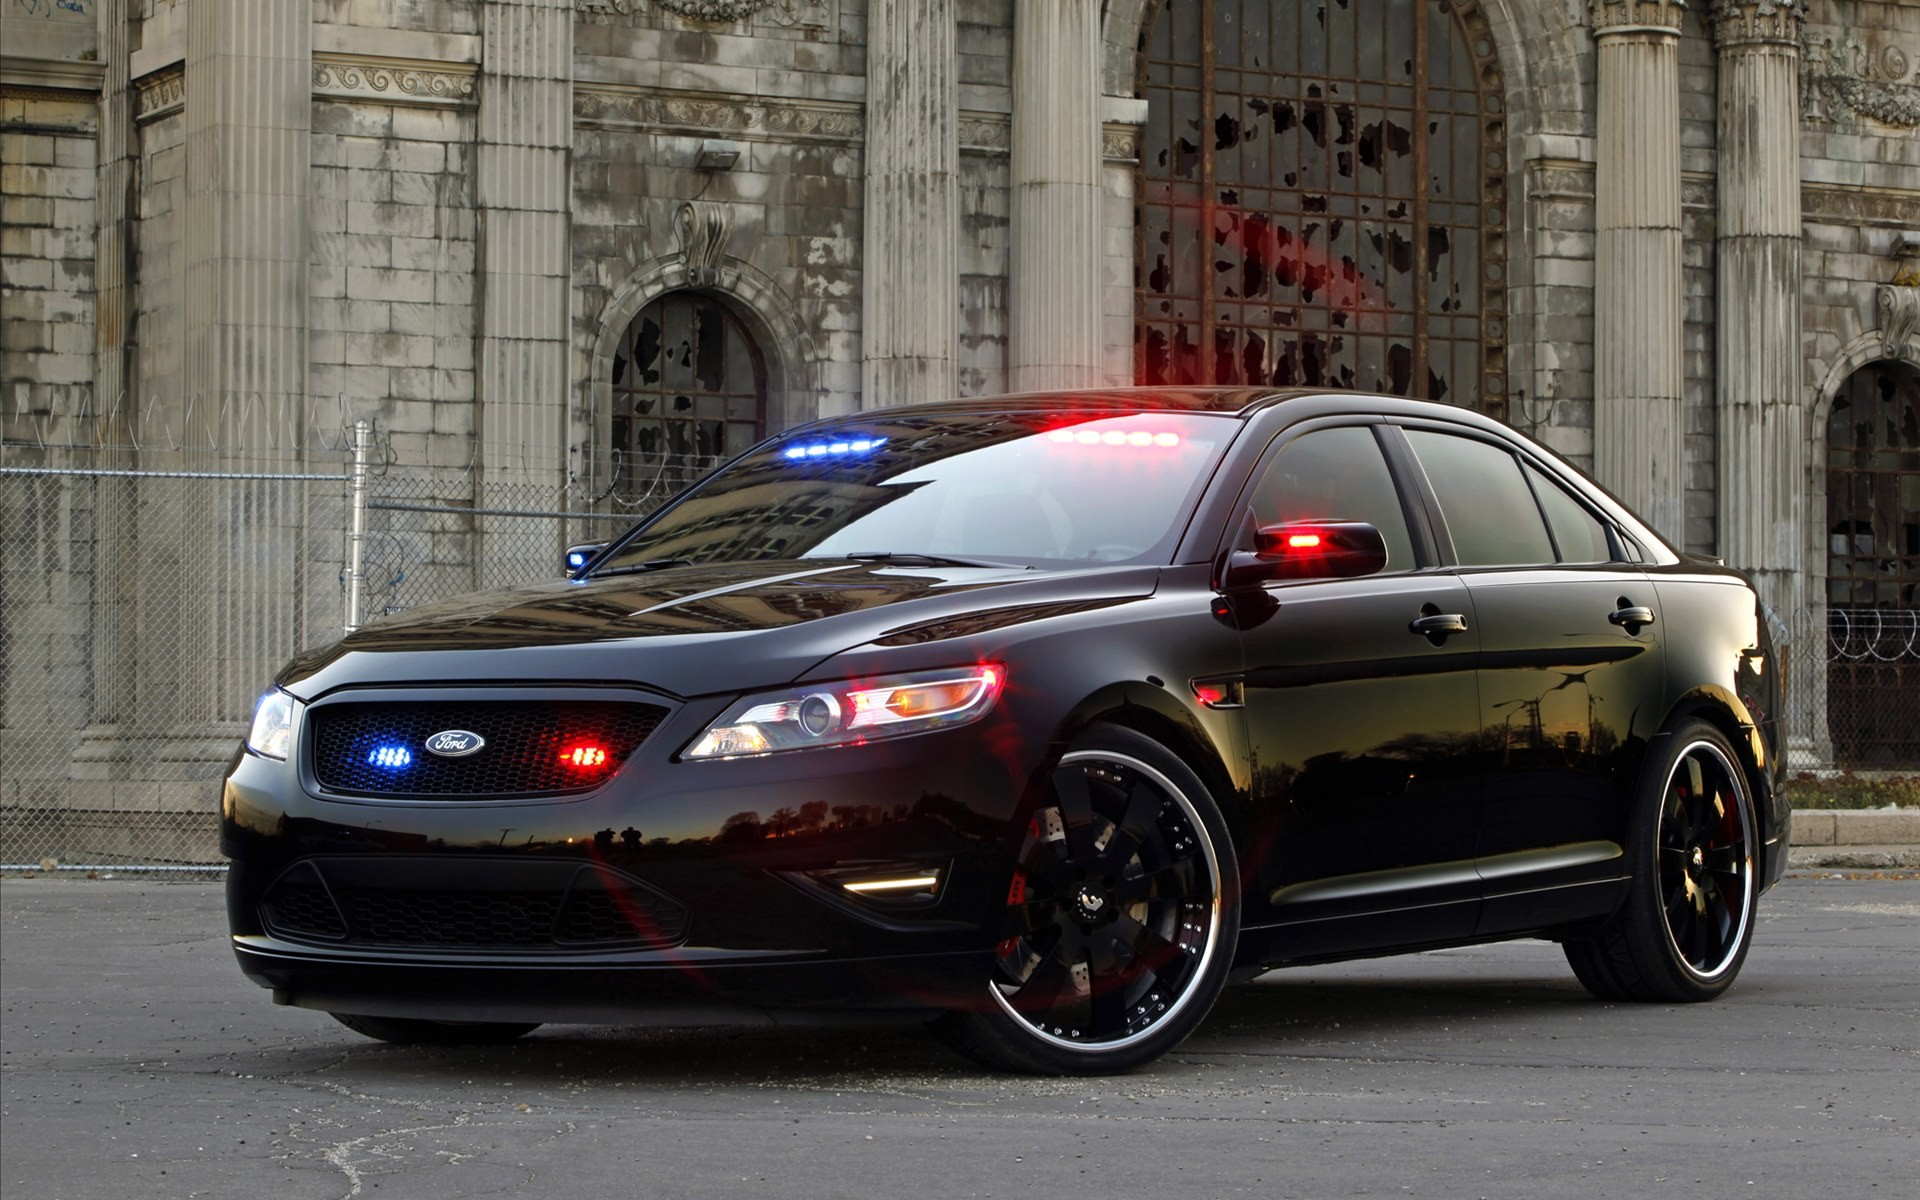 1920x1200 Police Car Wallpapers Phone